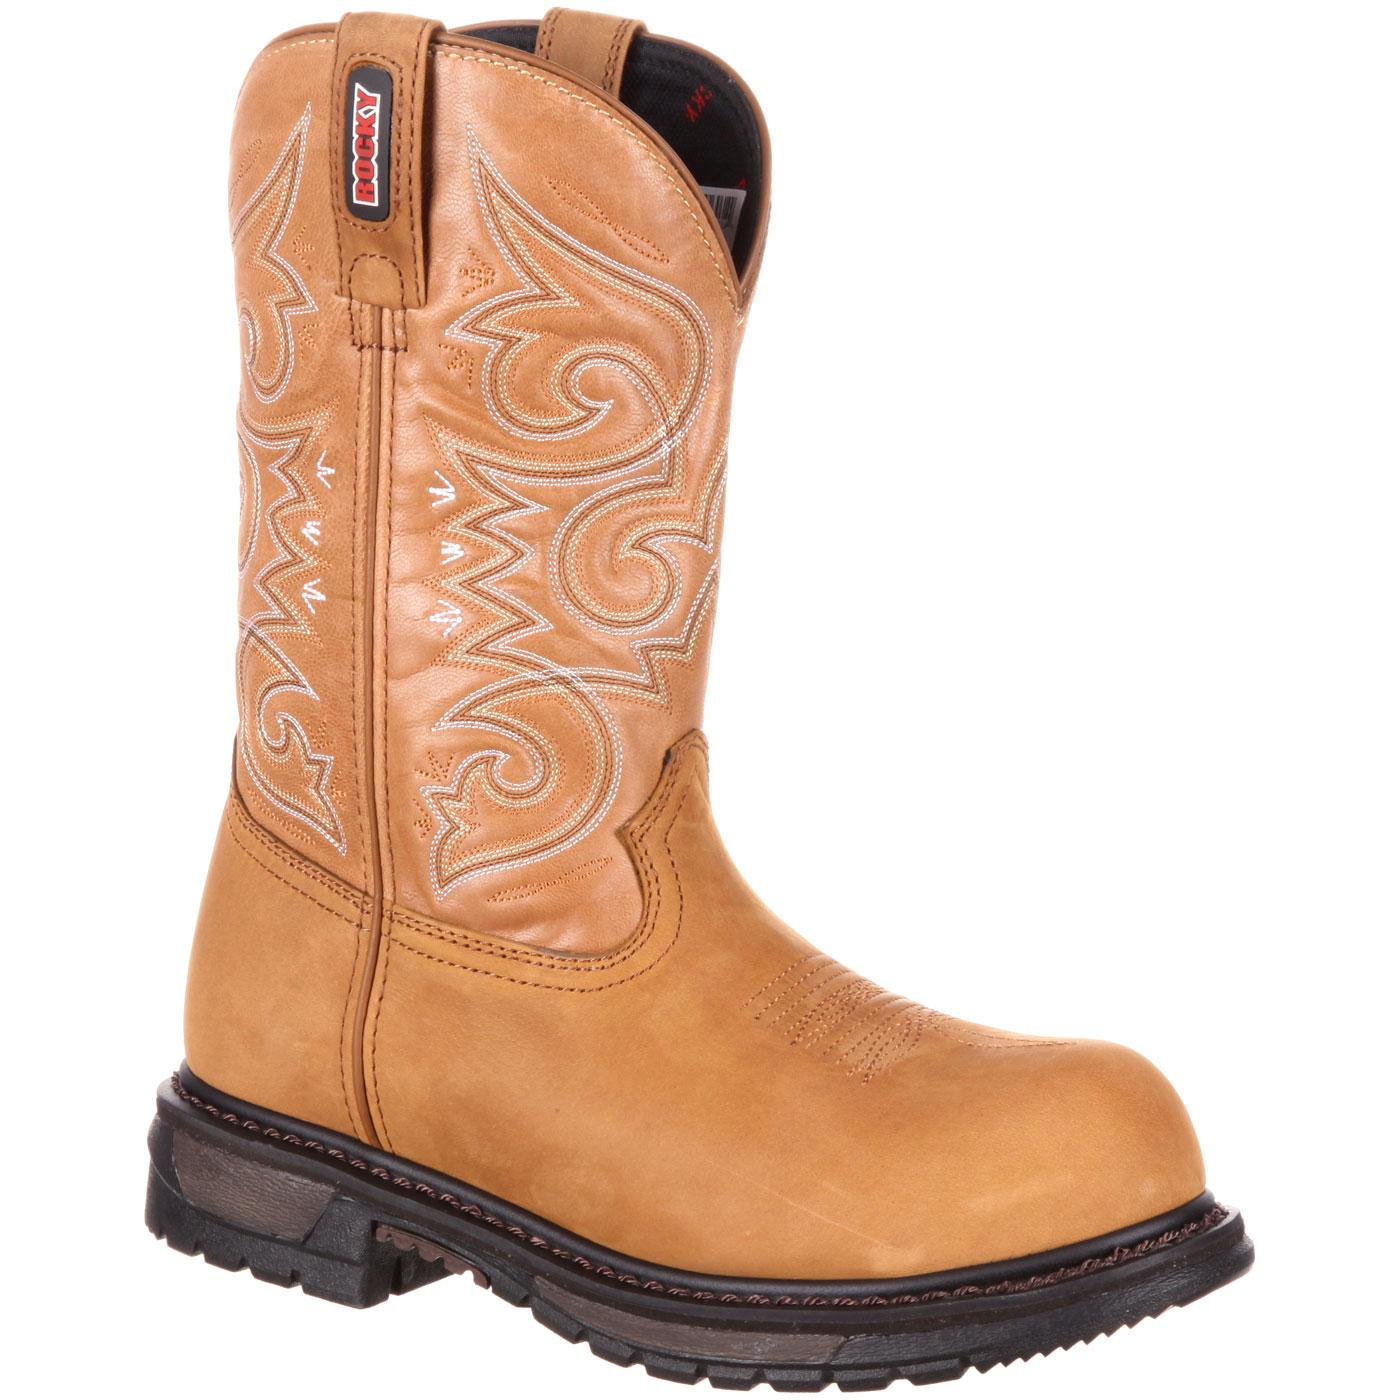 Rocky Original Ride Women s Composite Toe Waterproof Western Boot c72d4d35ed